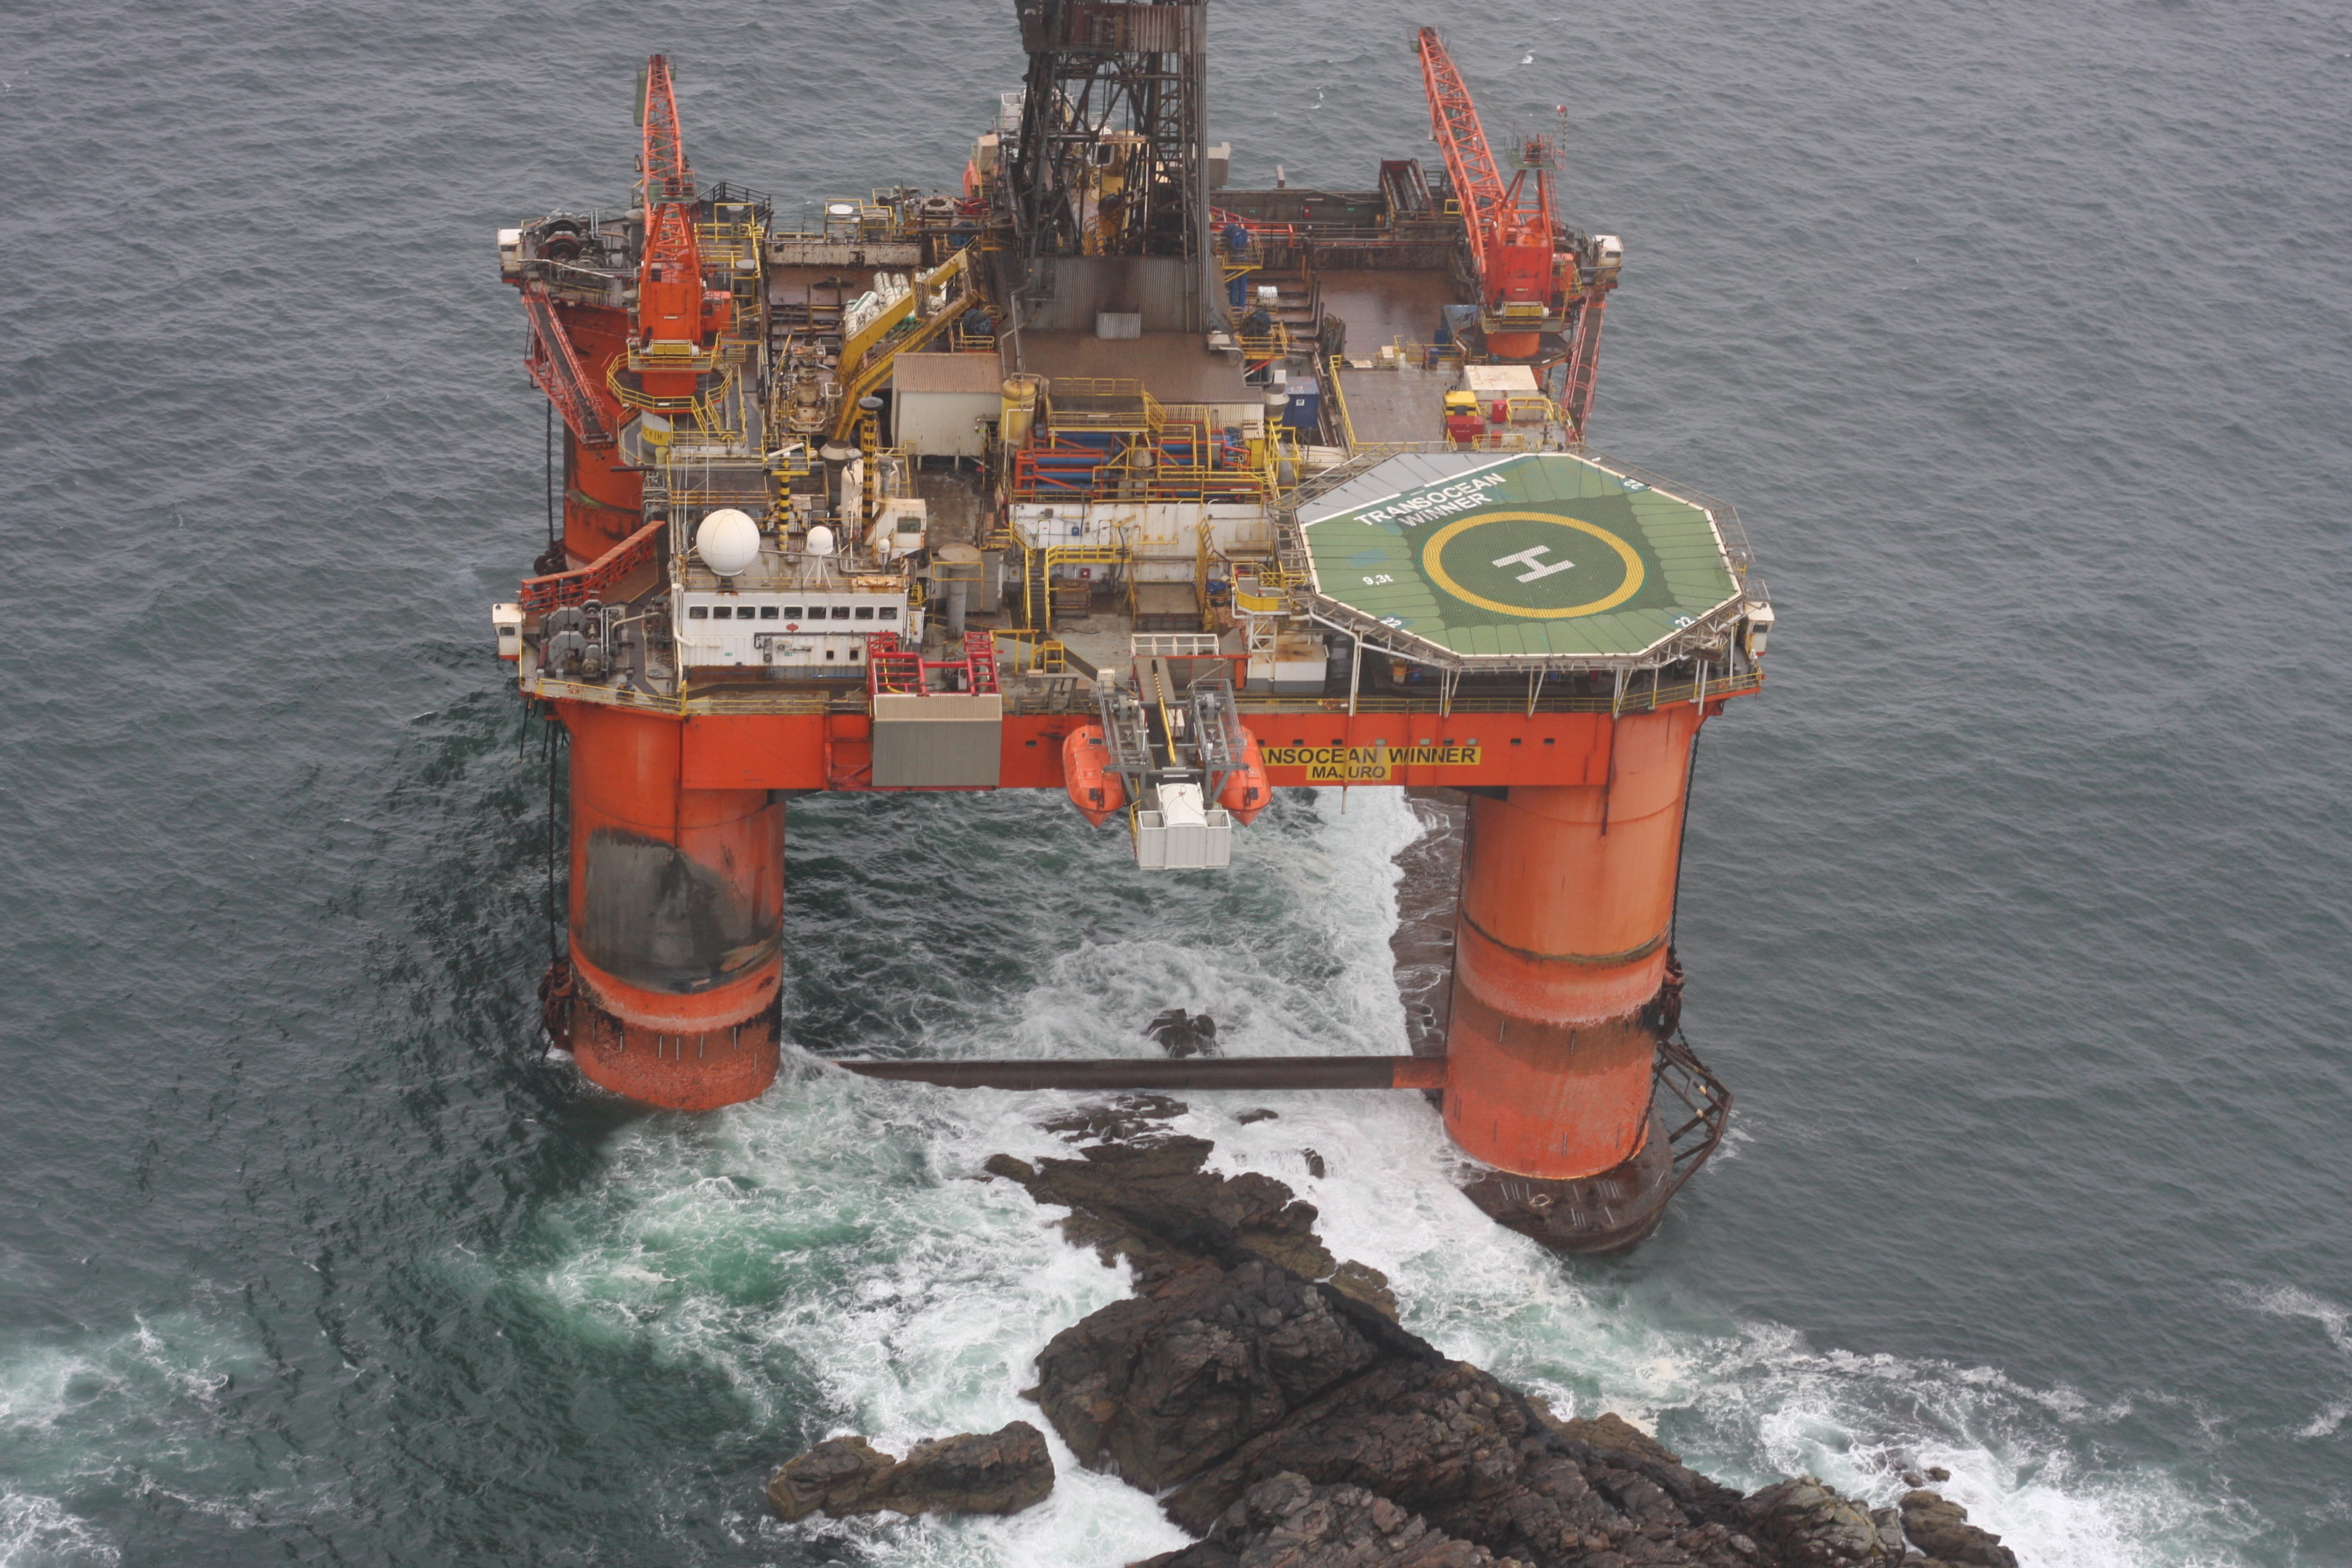 The stranded Transocean Winner oil rig